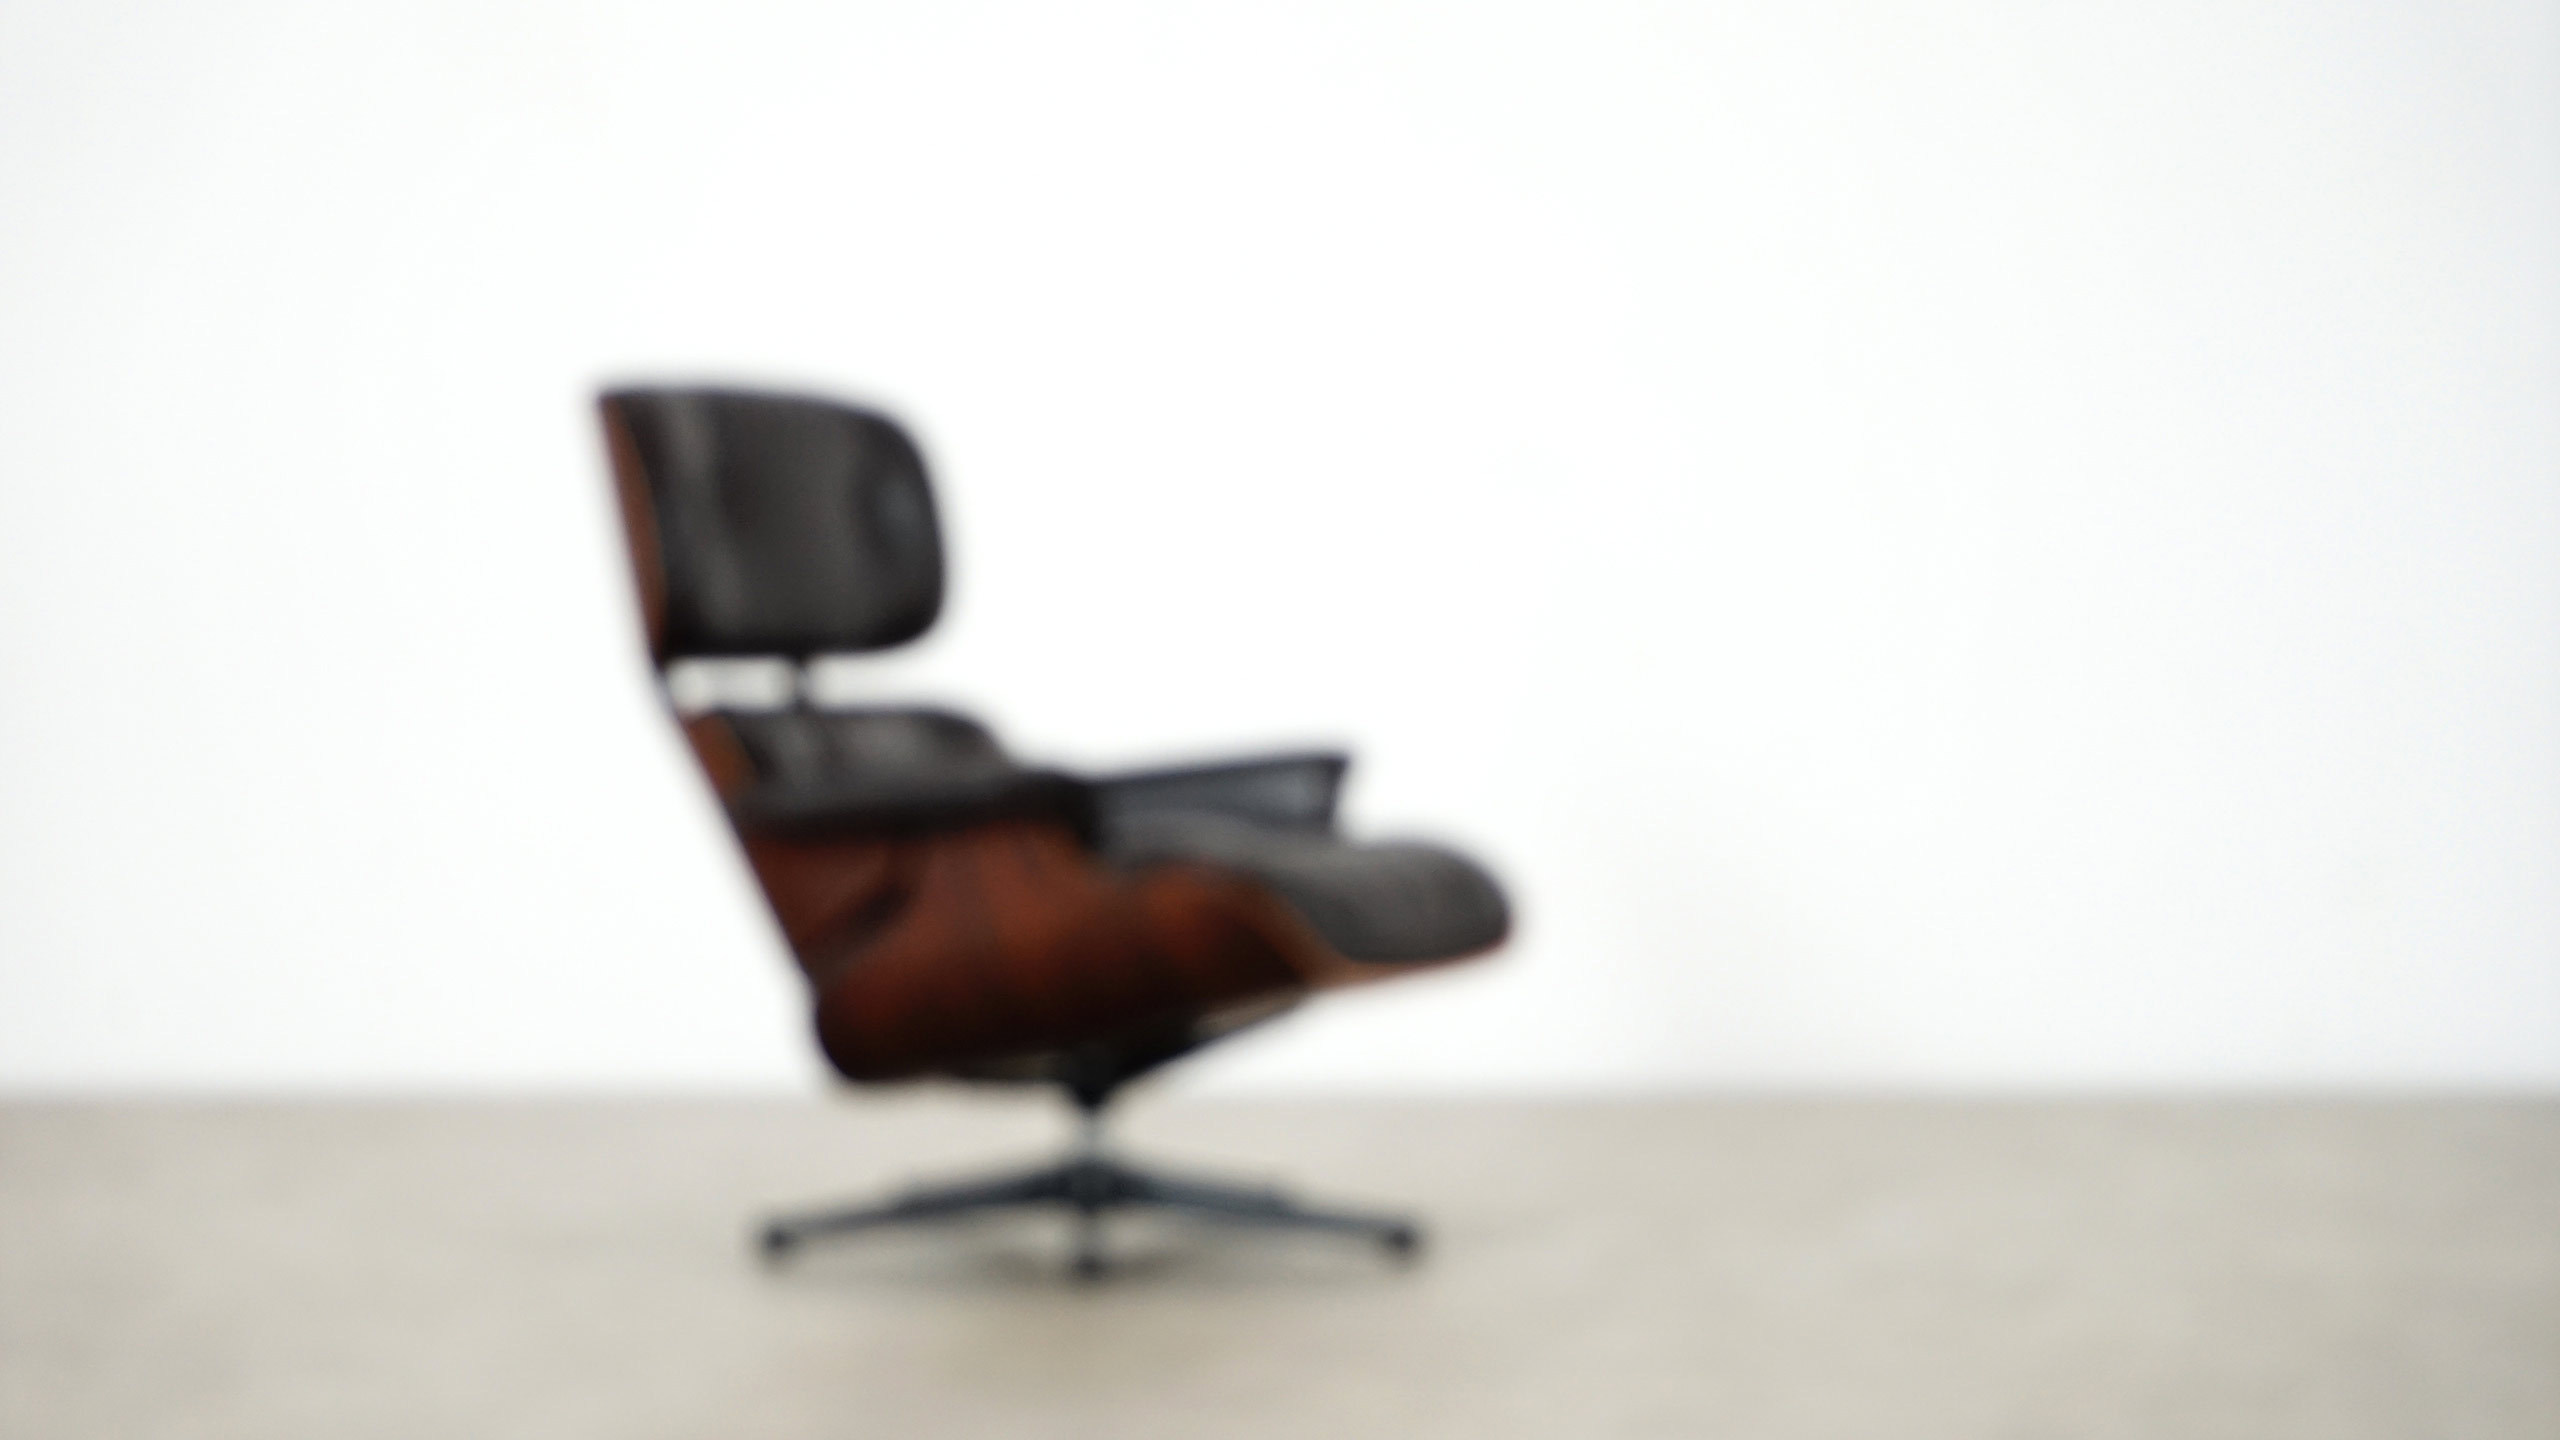 Charles Eames Charles Eames Lounge Chair By Herman Miller Darkbrown Leather